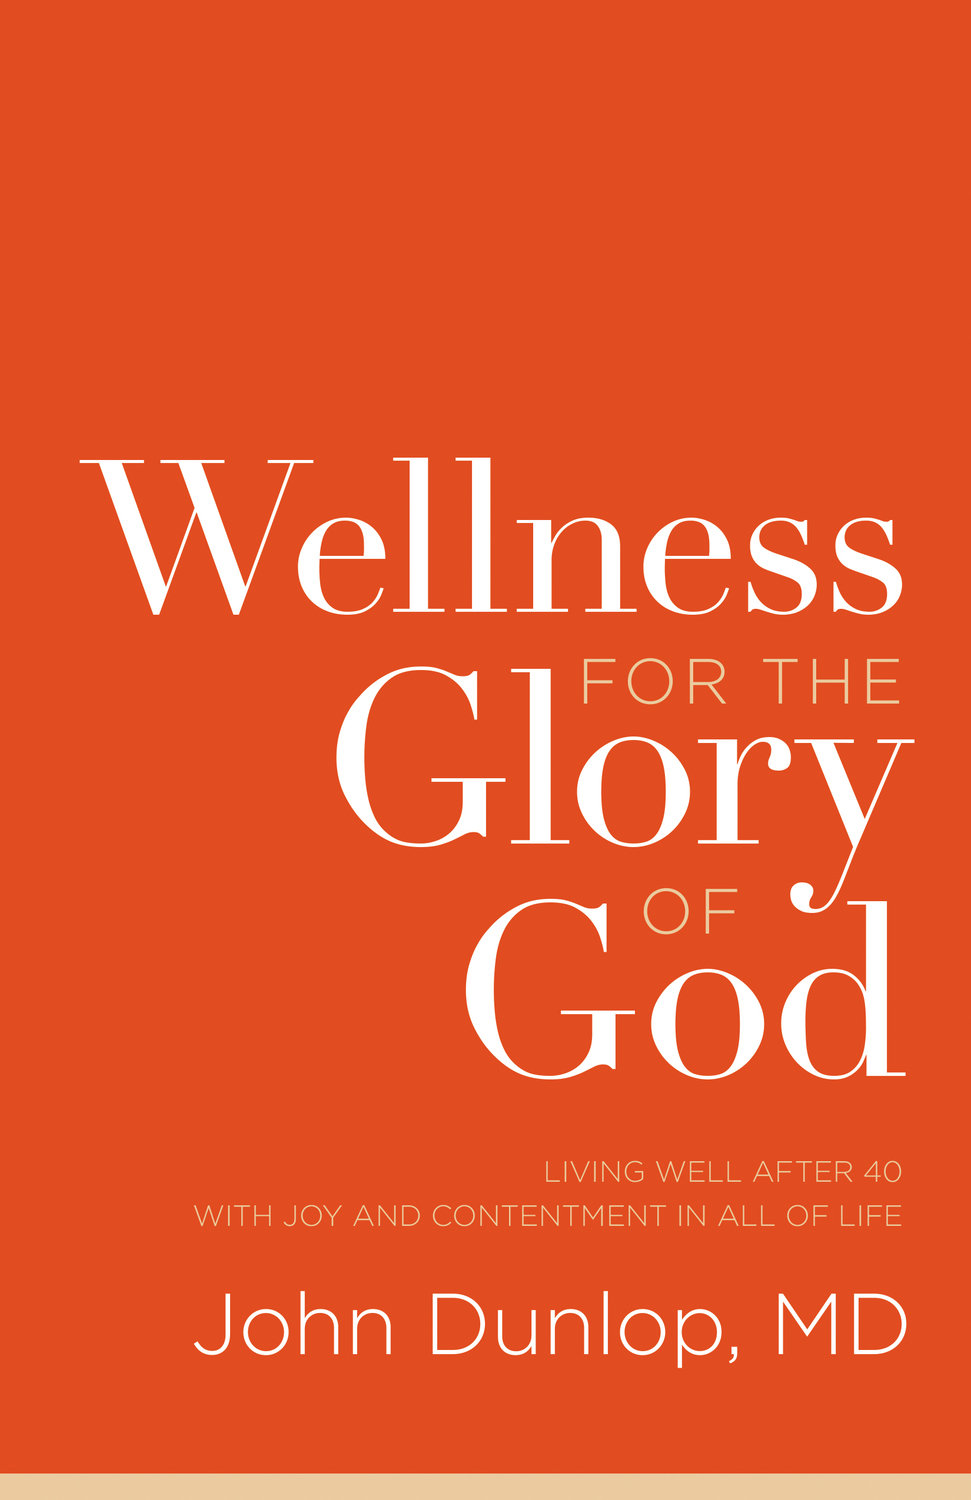 Wellness for the Glory of God